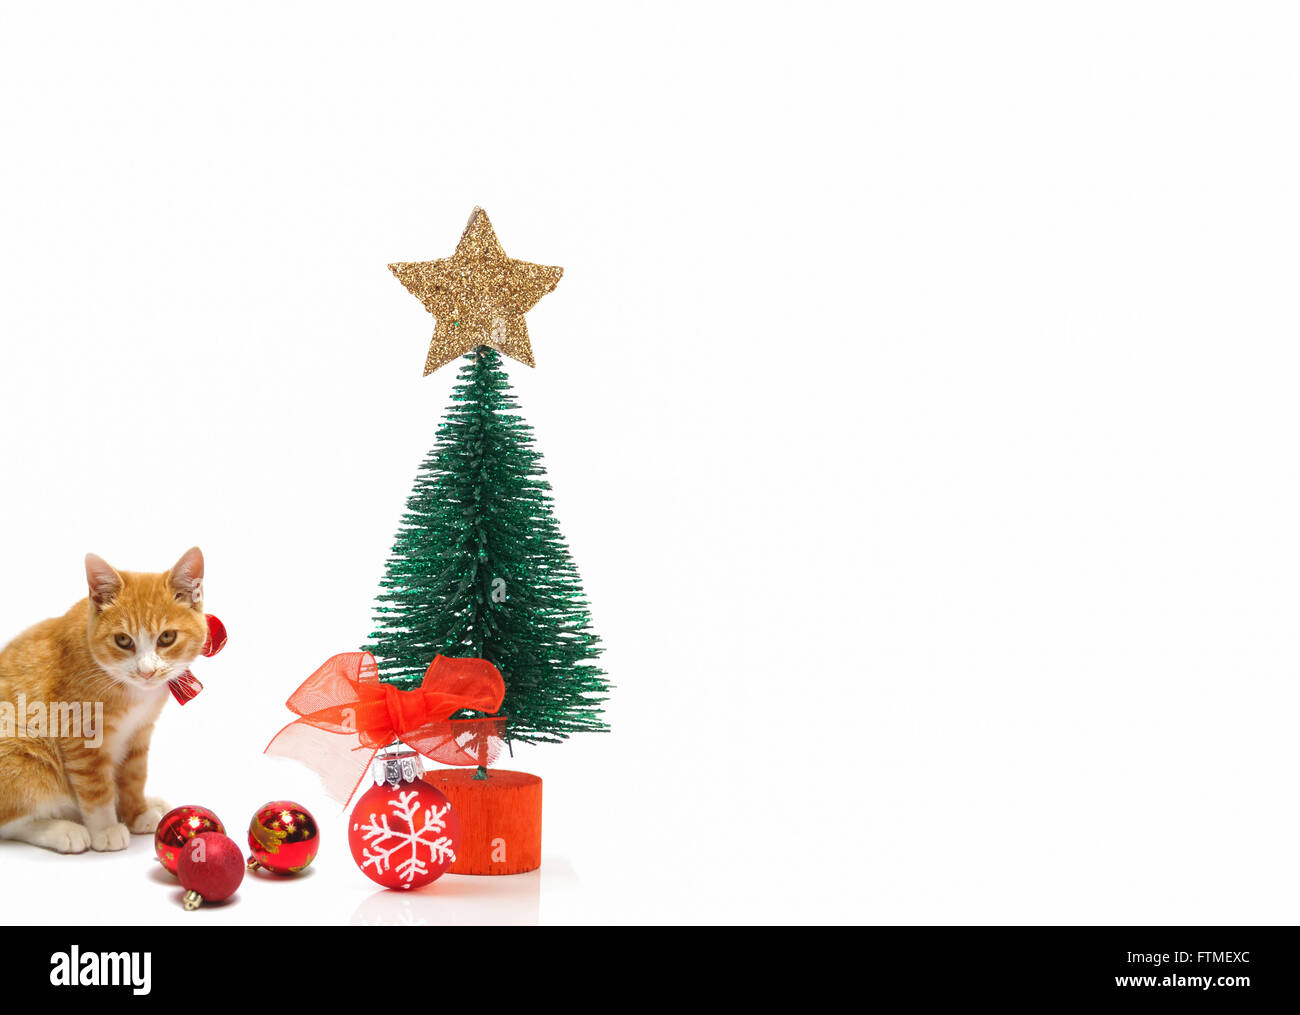 ginger cat with christmas decorations stock image - Cat Christmas Decorations